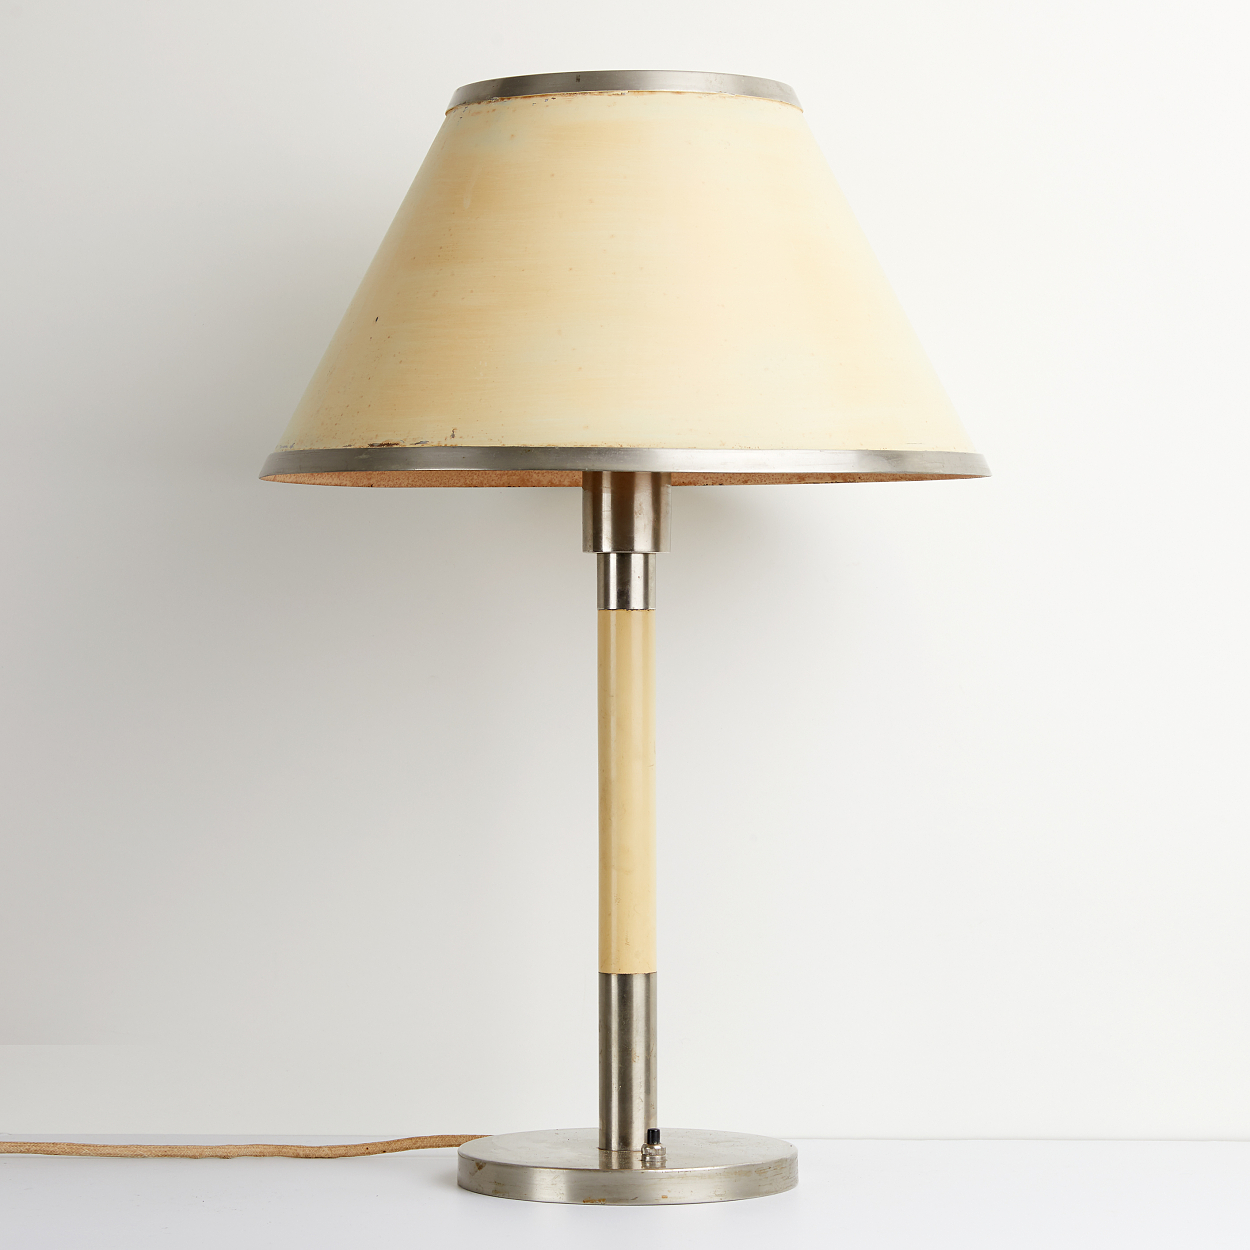 A 1940´s Böhlmarks table lamp, Stockholm